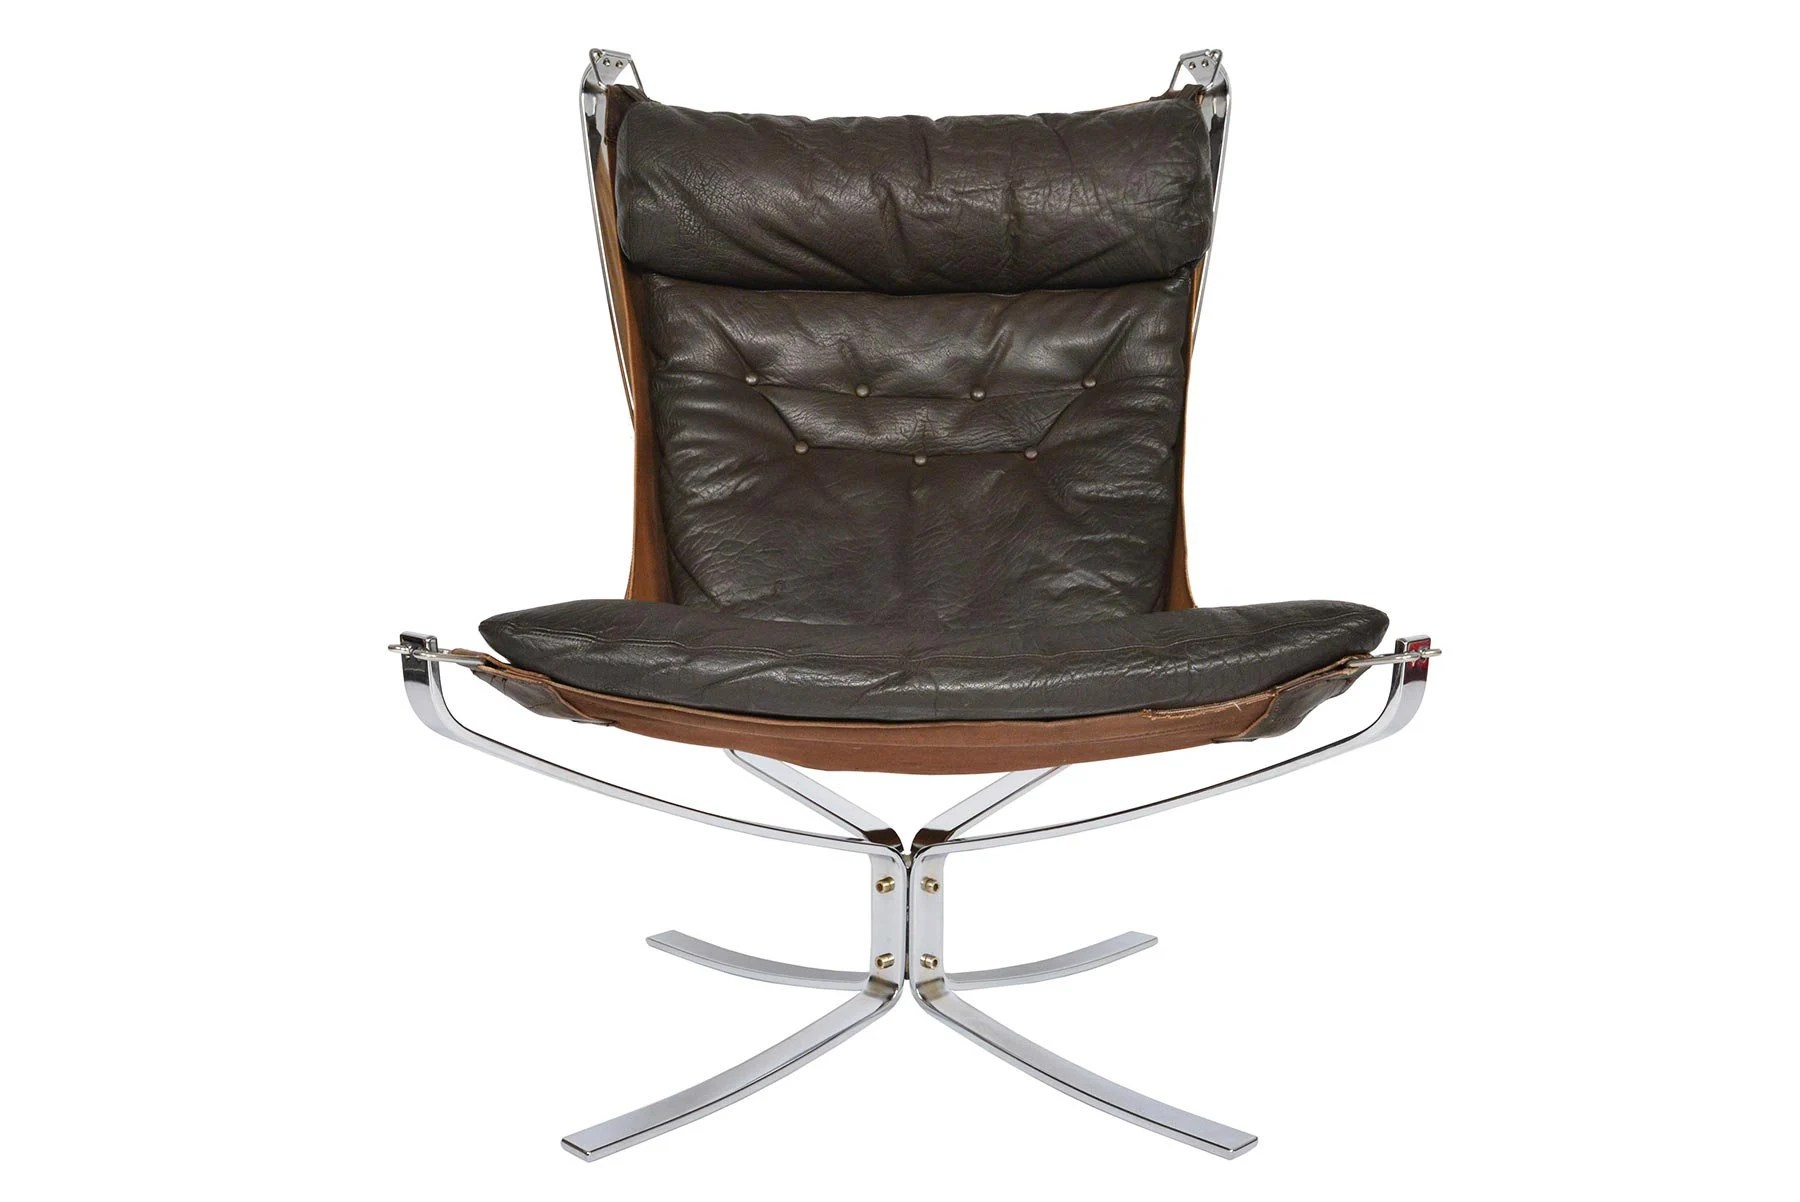 Falcon Chair Scandinavian Modern Mid Century Leather Chrome Falcon Chair By Sigurd Ressell